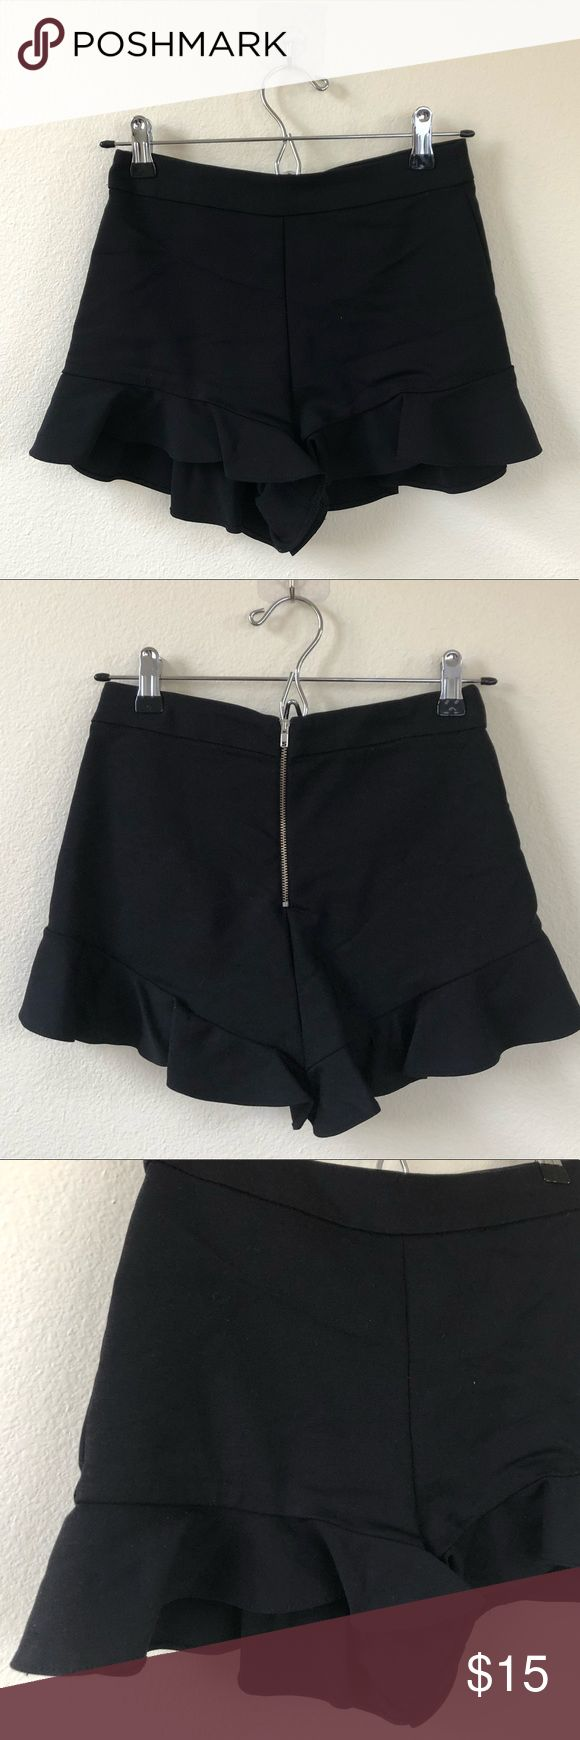 Zara Black Skorts with Frill details High waisted, super comfortable, and chic. It looks great with a lace top, bodysuits, or button ups. If you're a minimalist, a t-shirt looks great too.  Waist 12 1/2 inches  Length 13 1/2 inches  Fits true to size.  Like new. Worn twice. Zara Shorts Skorts